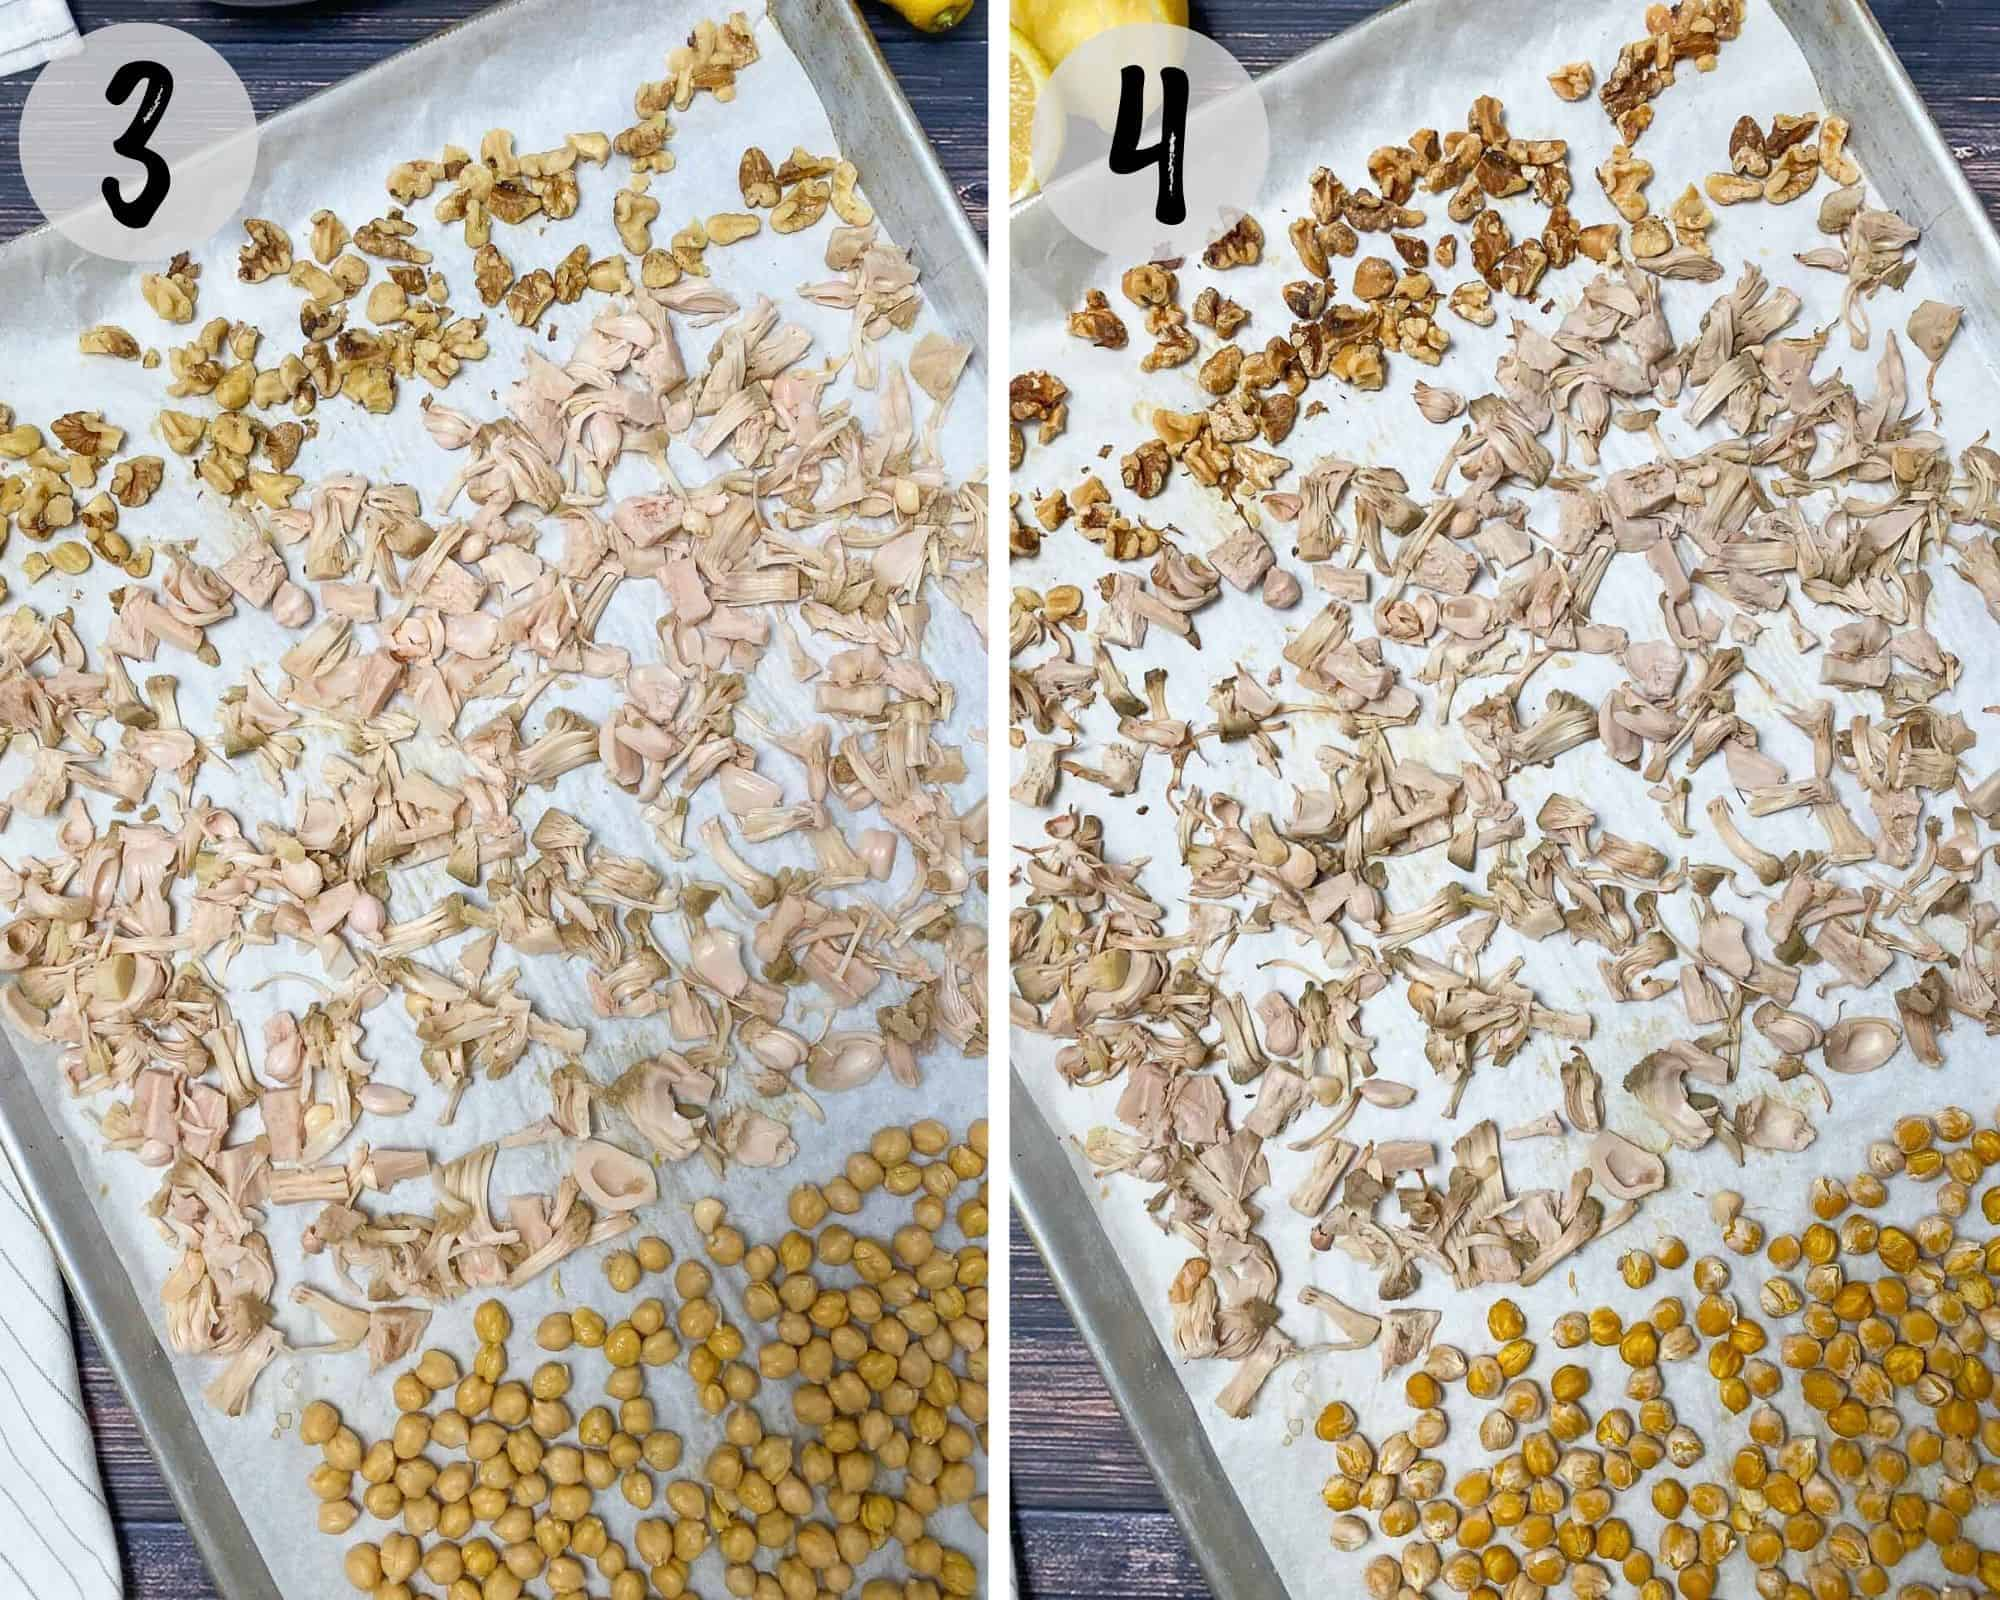 baking tray with shredded jackfruit, chickpeas and walnuts